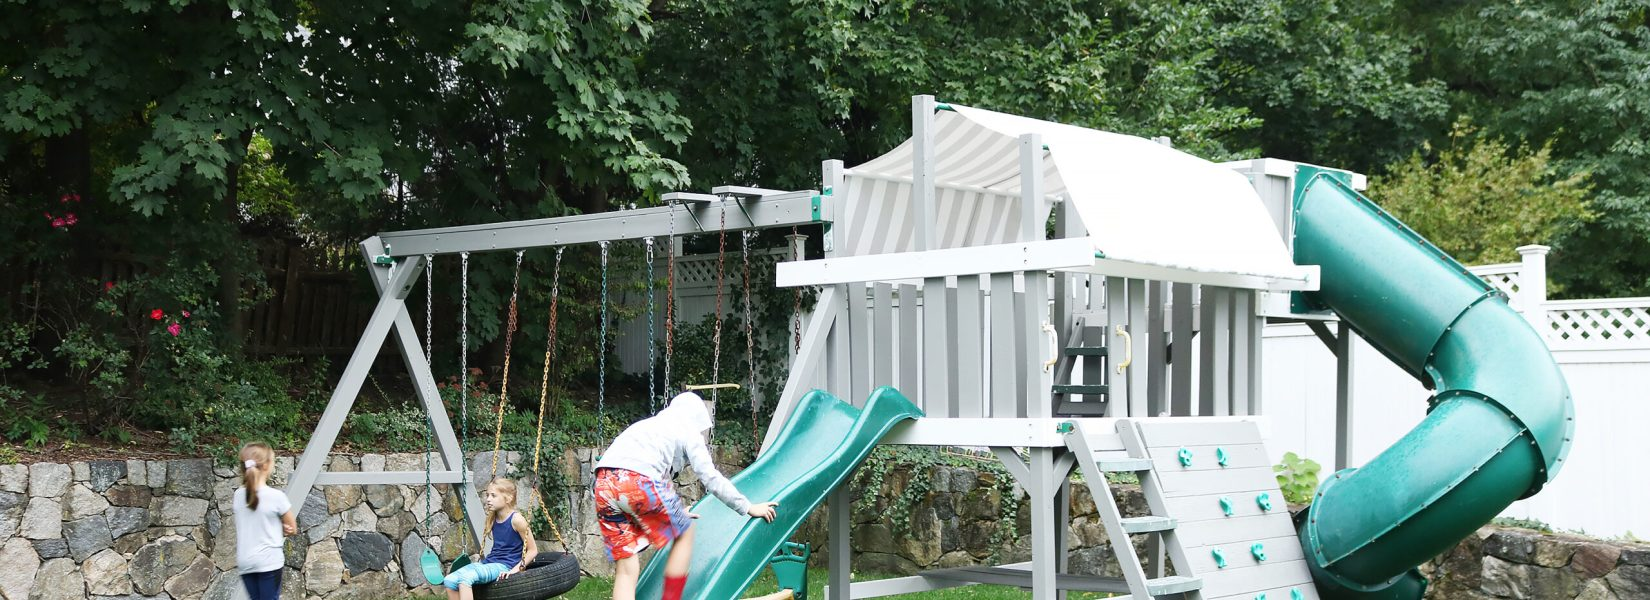 Backyard Playset Makeover